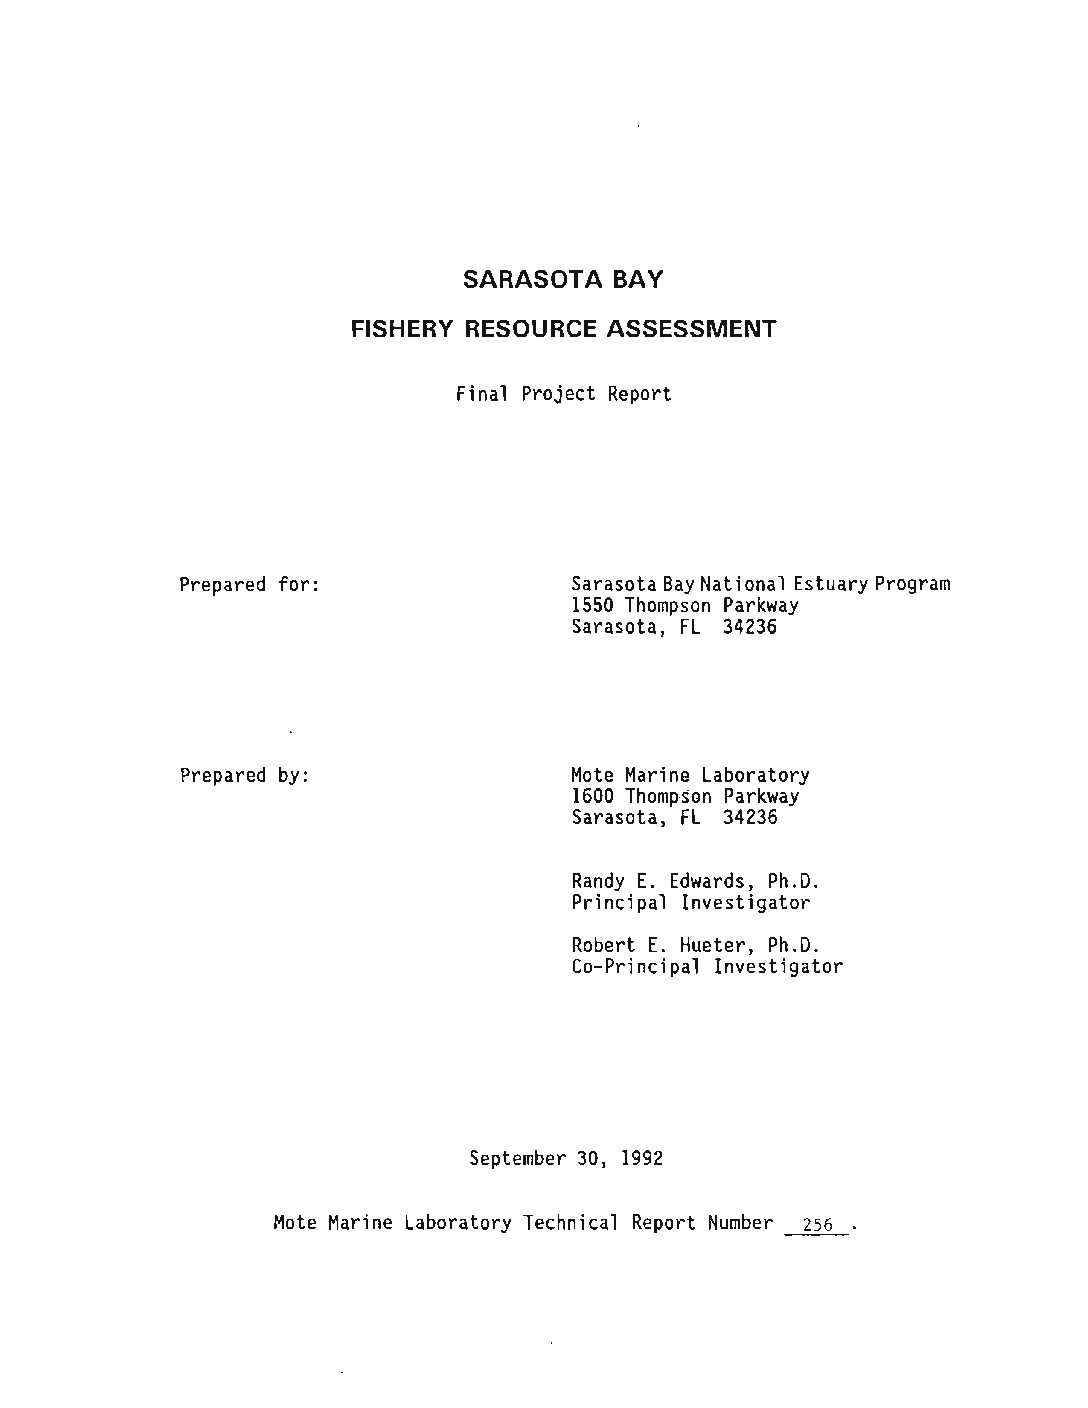 Sarasota Bay Fishery Resource Assessment (1992)